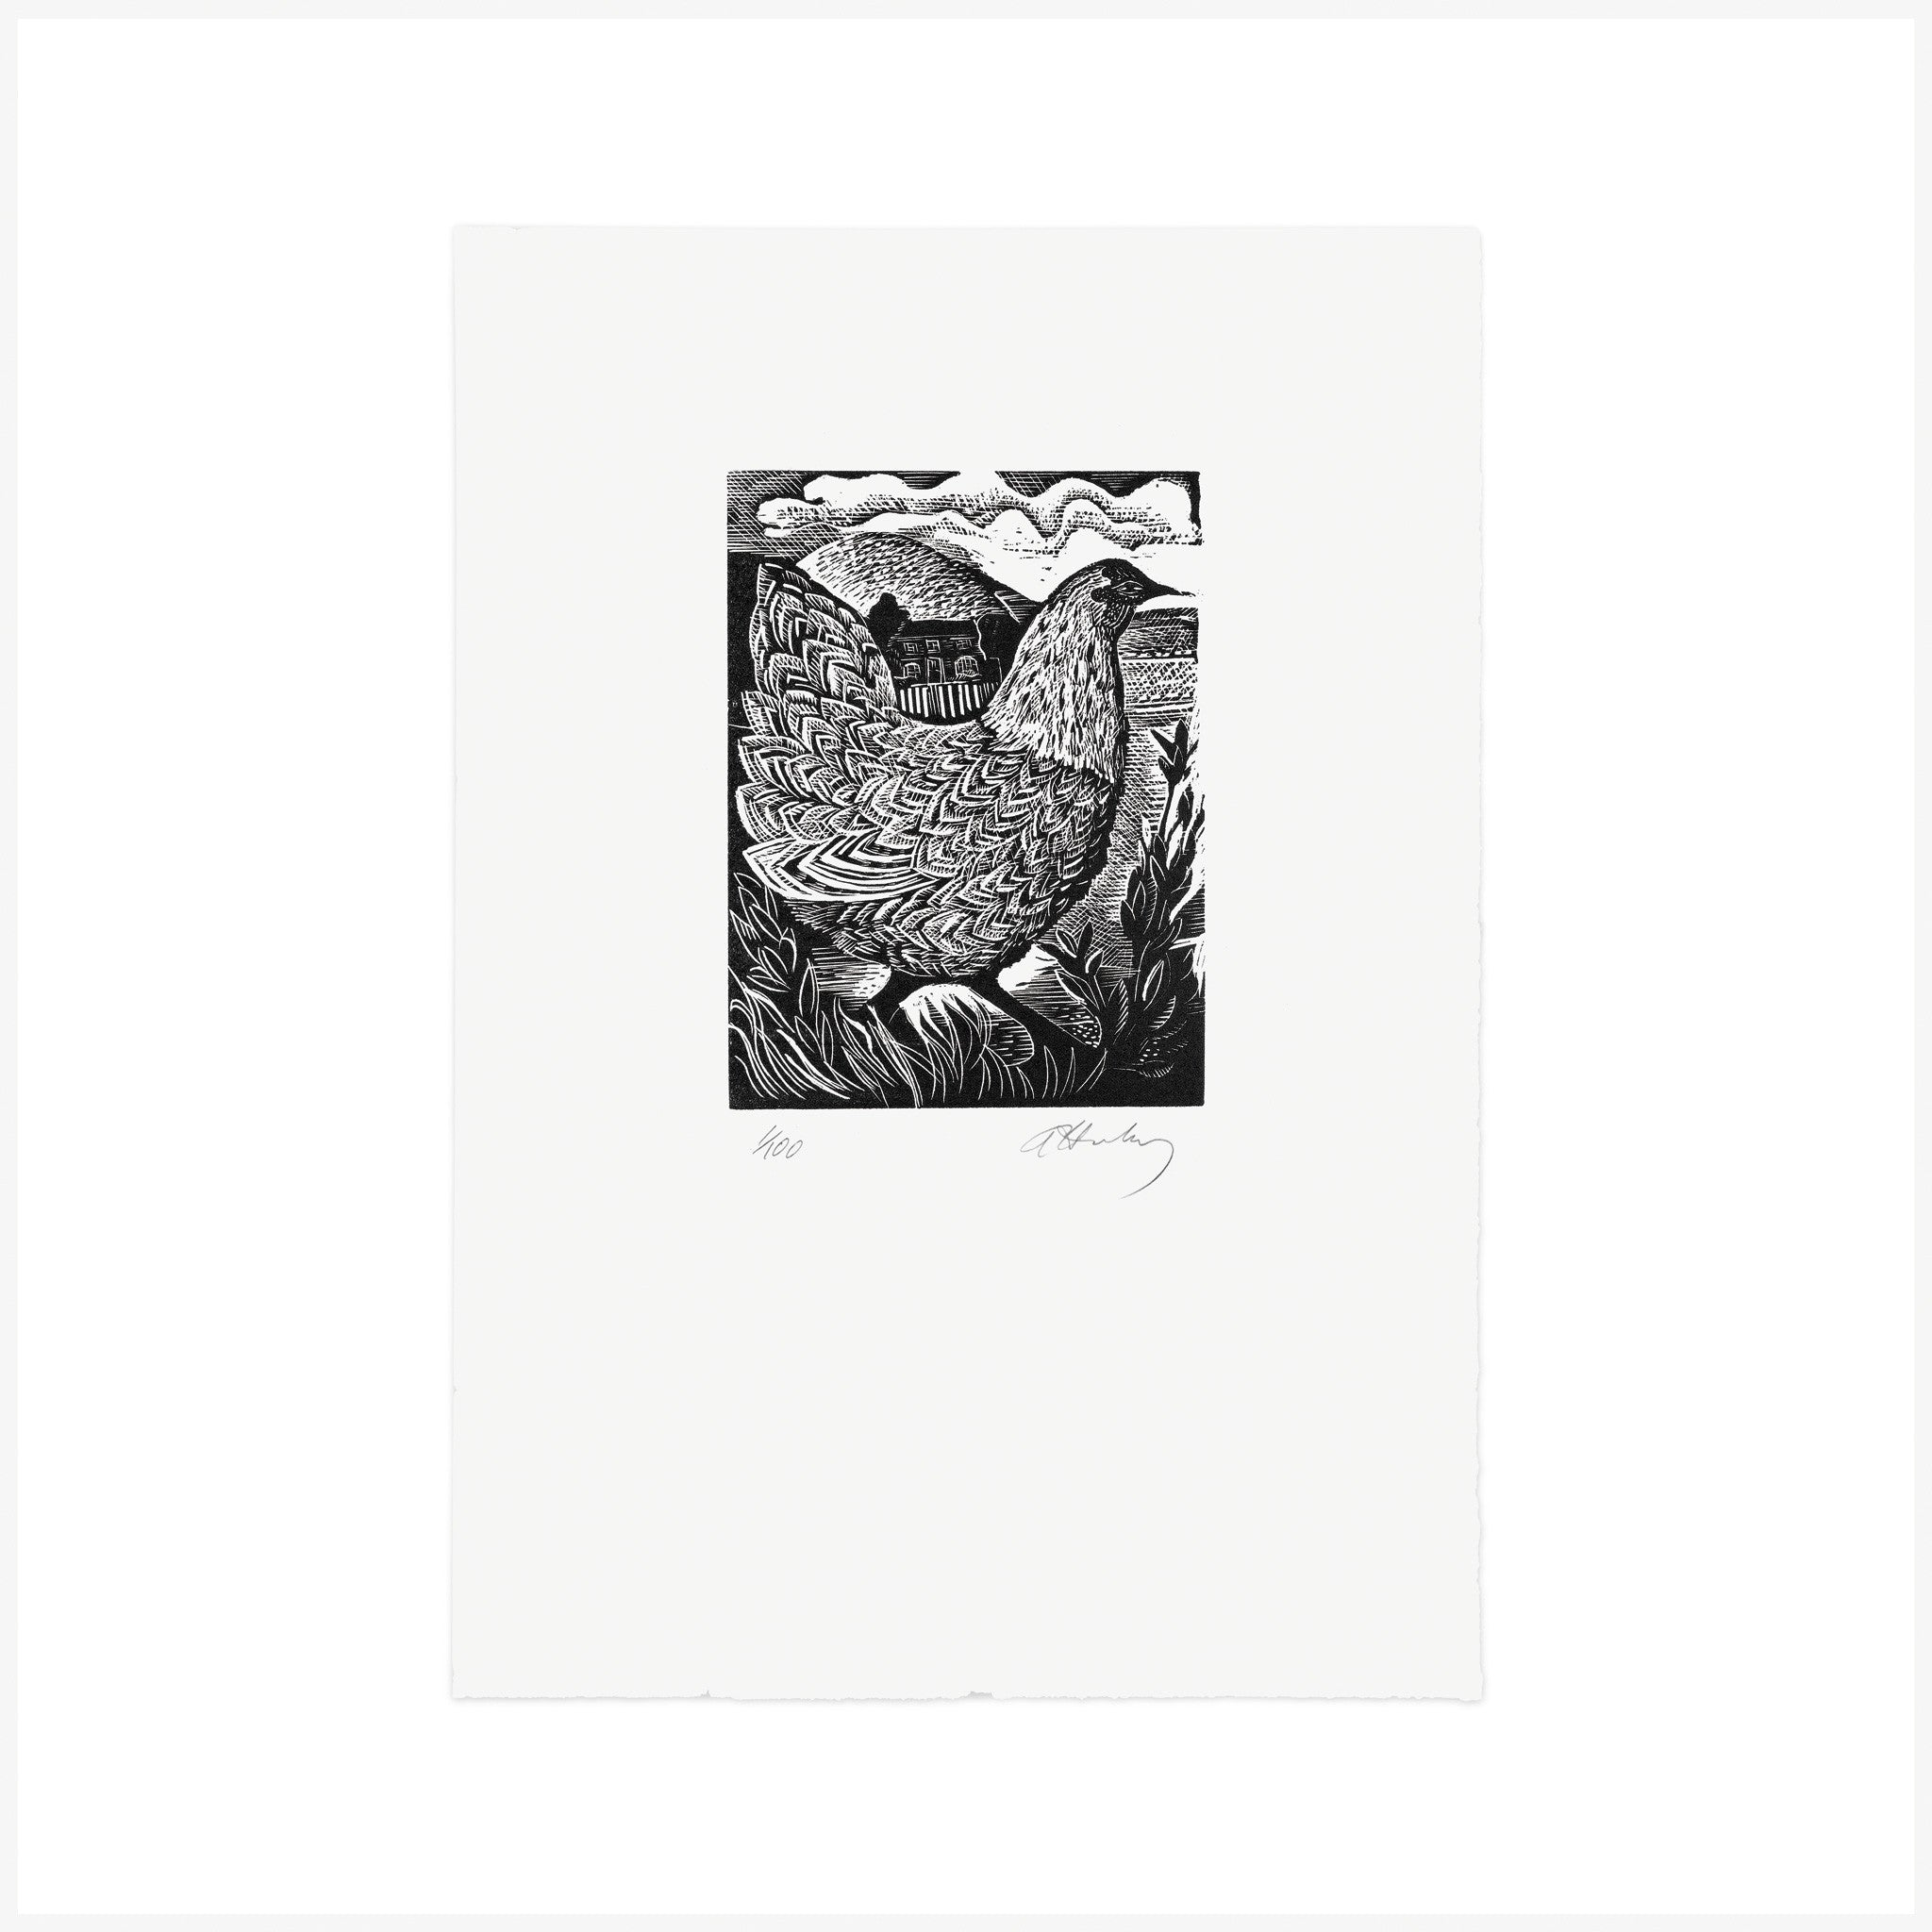 C is for Chicken, Wood Engraving by Angela Harding